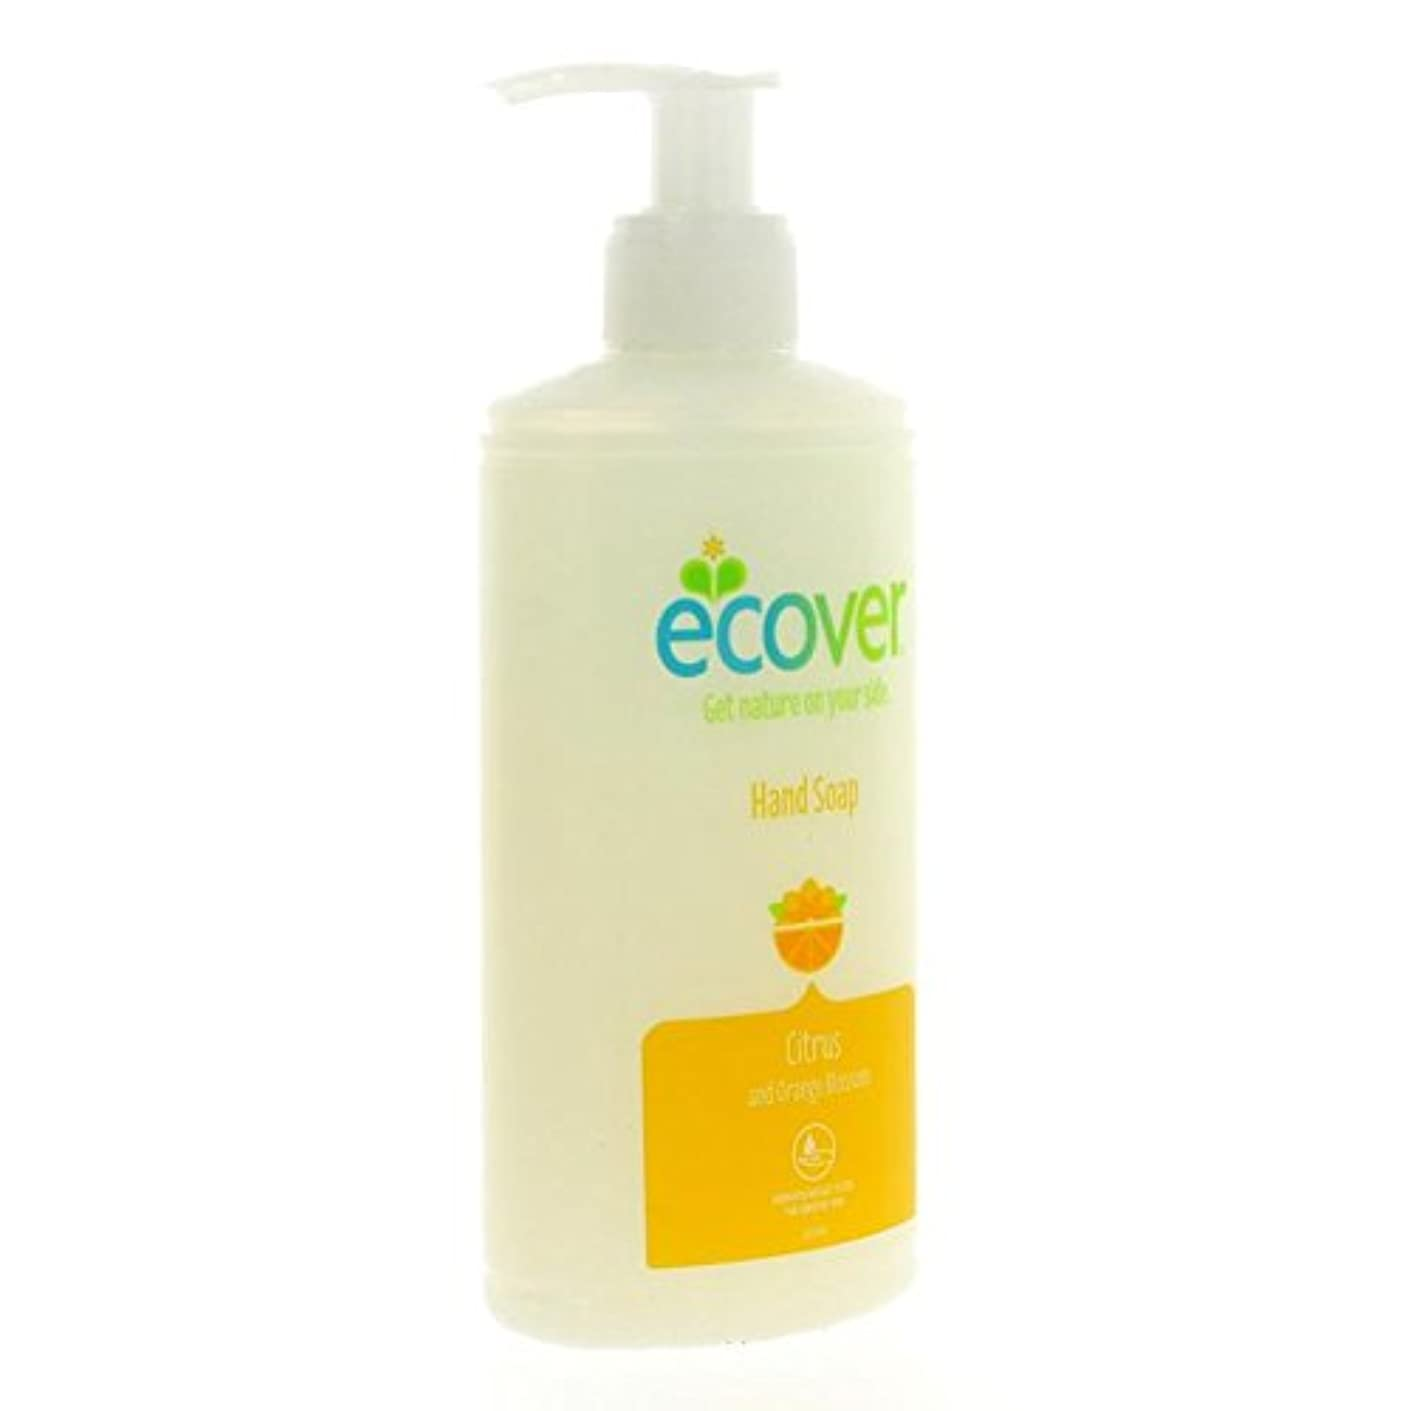 規則性簡潔な残りEcover - Hand Soap - Citrus and Orange Blossom - 250ml (Case of 6)